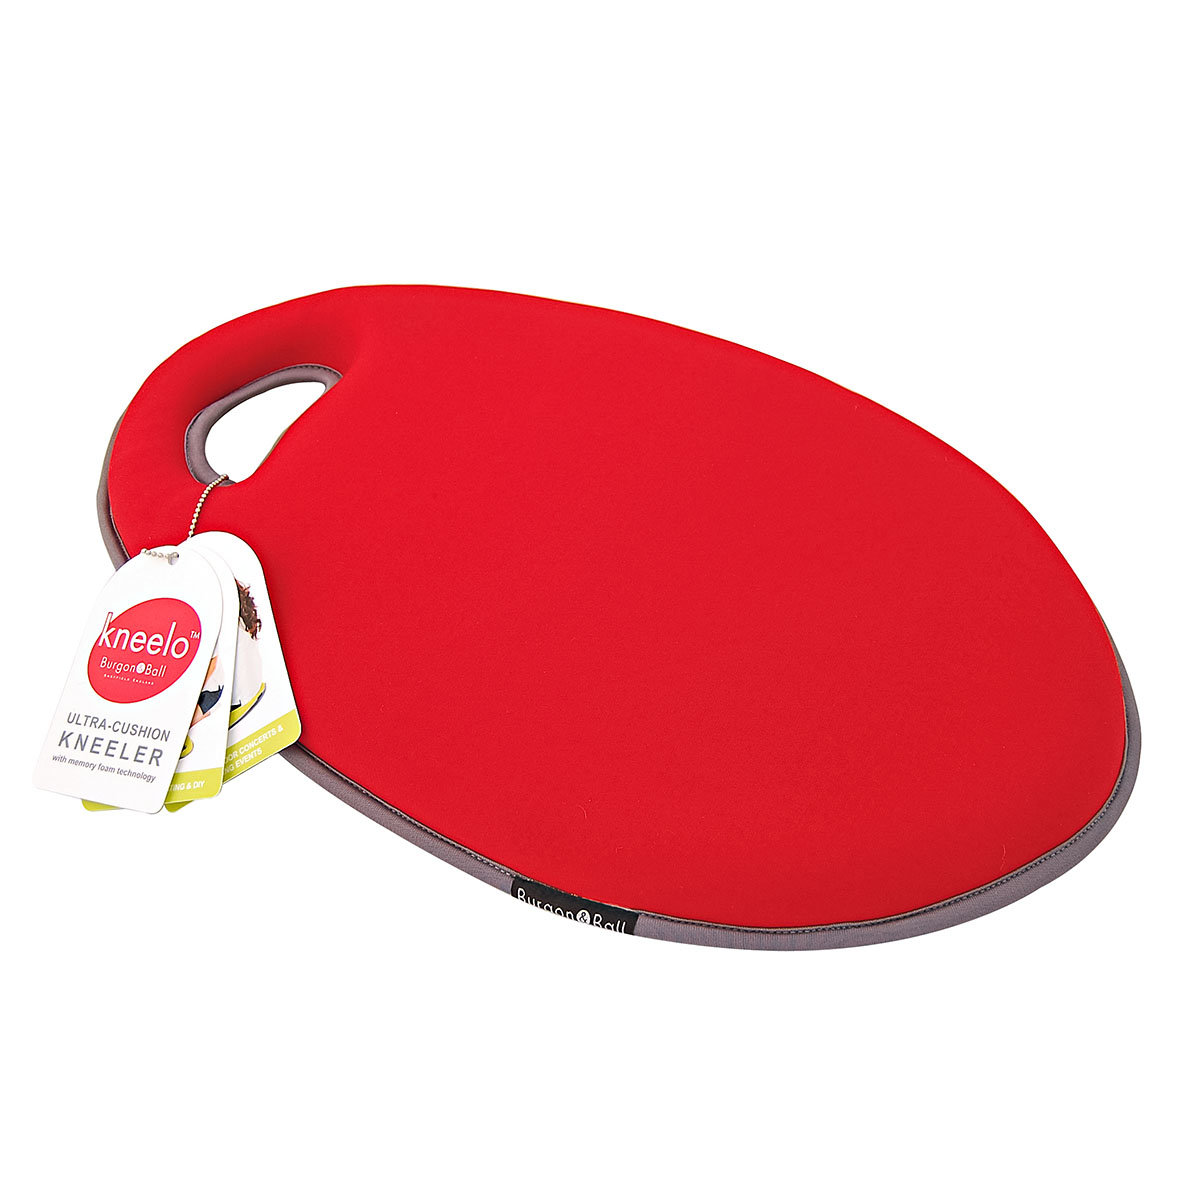 Burgon & Ball Kneelo Beetbank